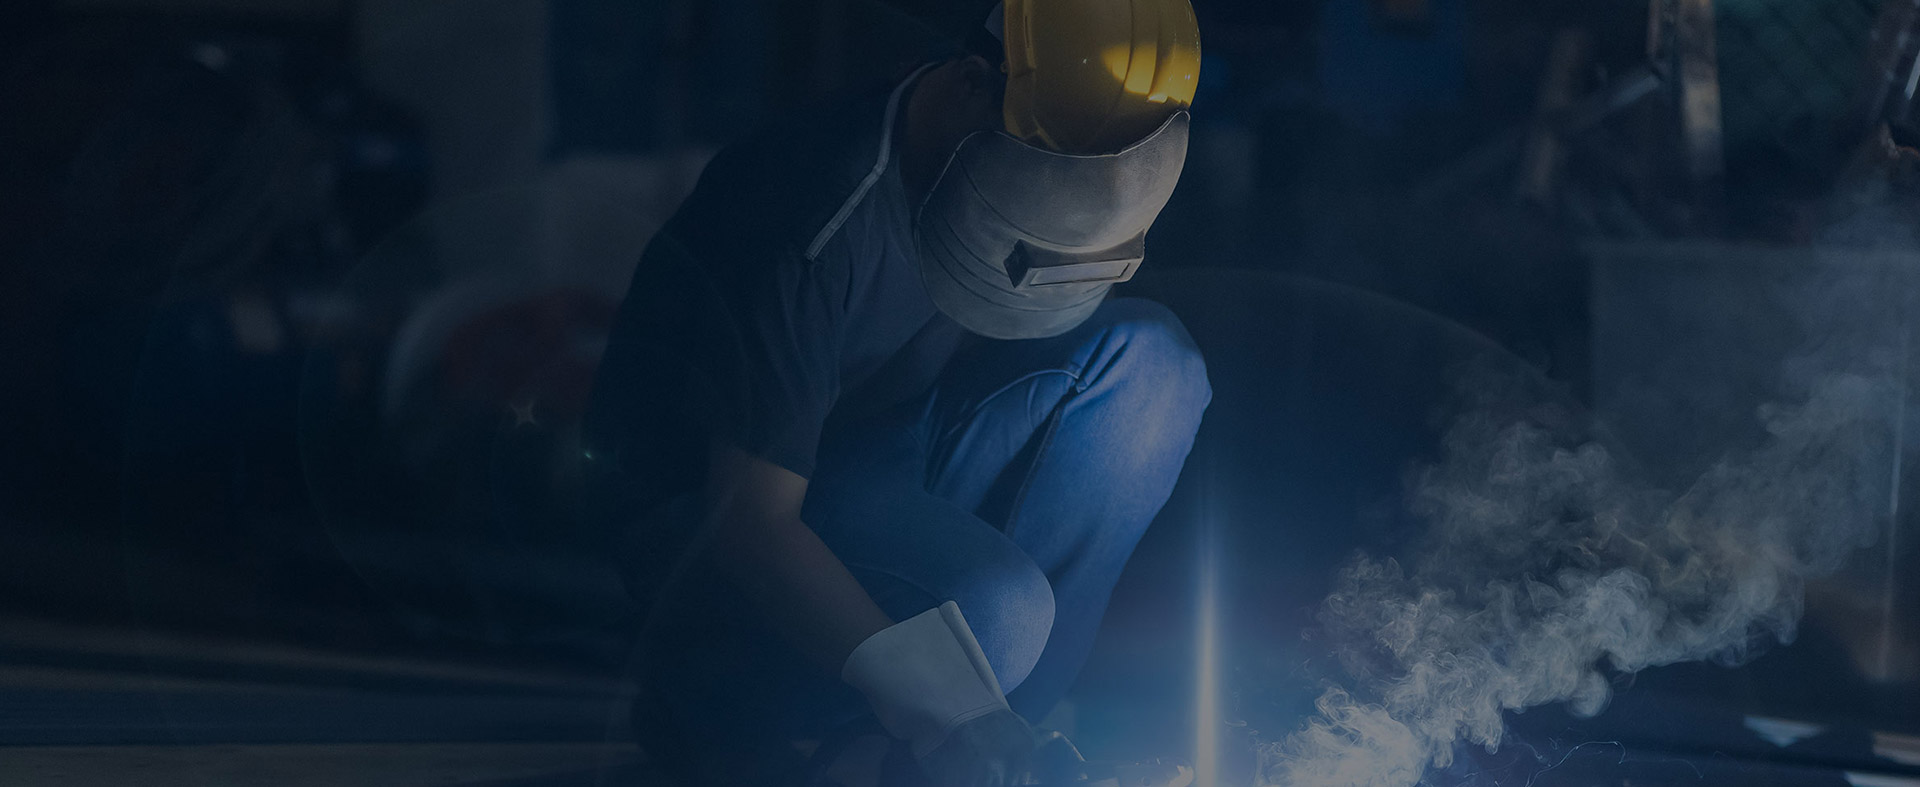 Blue Collar Trade Worker Welding Advertisement by Austin Williams a New York Digital Marketing Agency